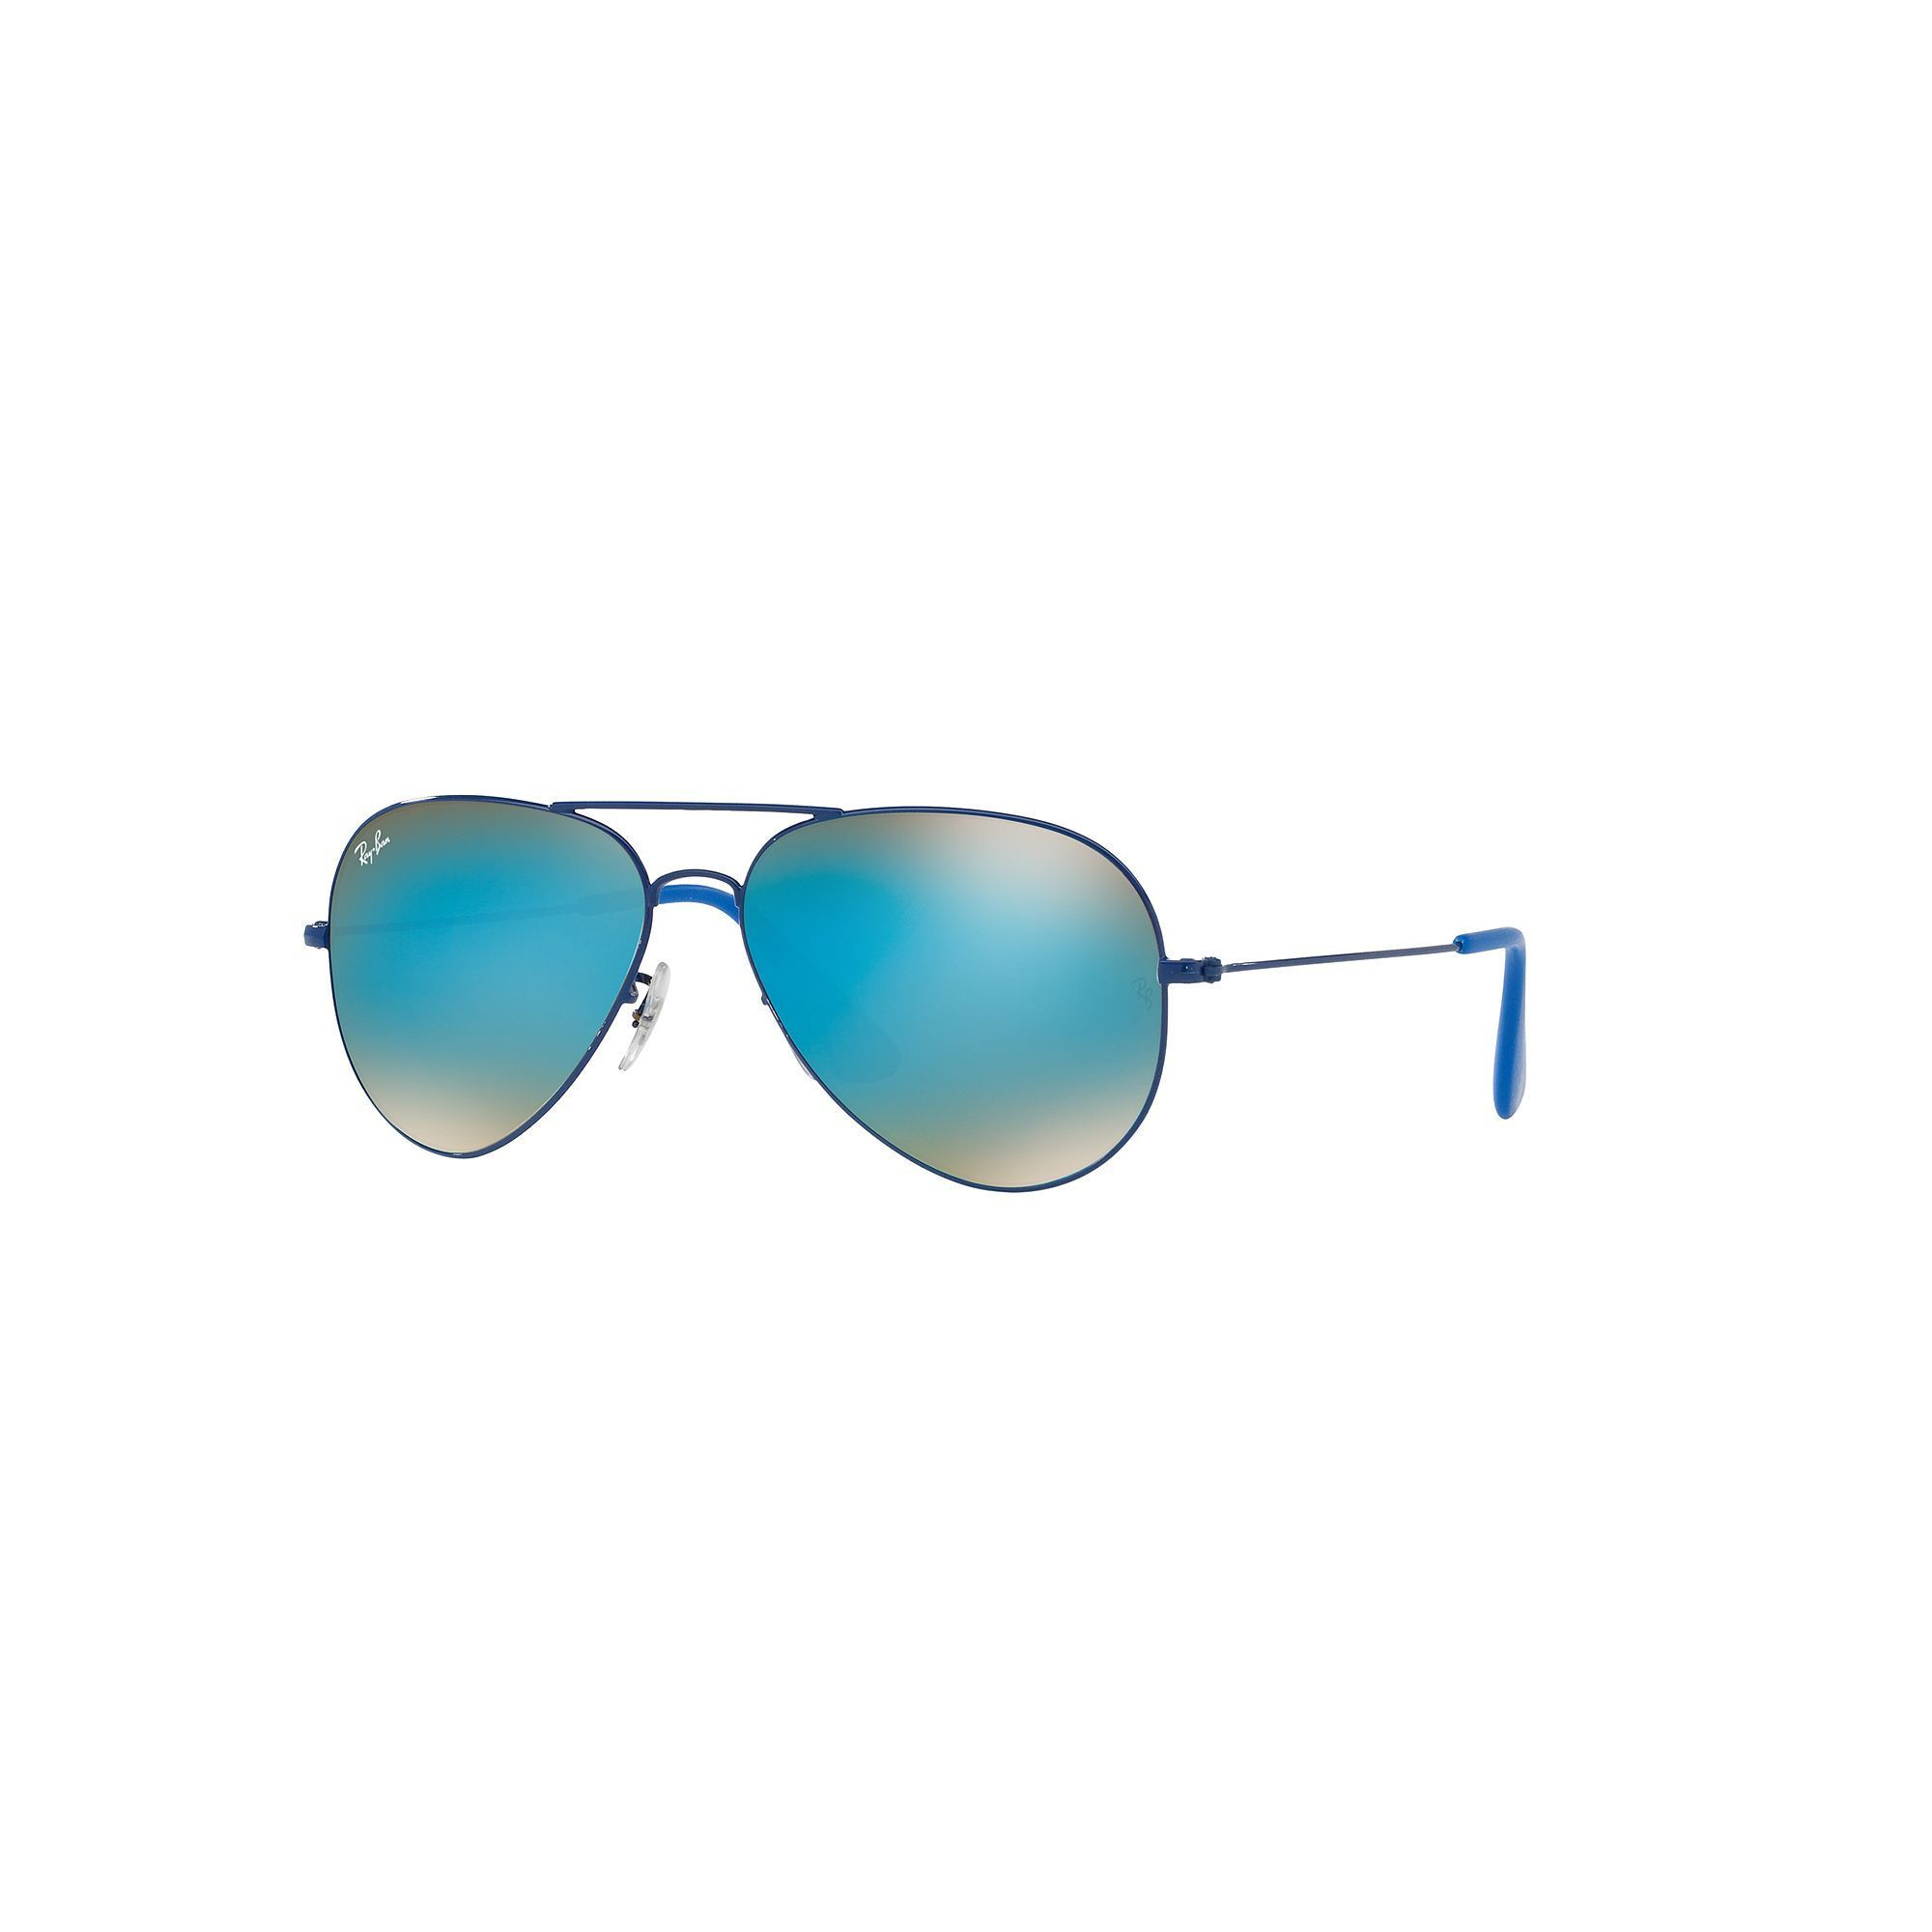 61b3663de6 Ray-Ban Youngster RB3558 58mm Aviator Gradient Flash Sunglasses ...